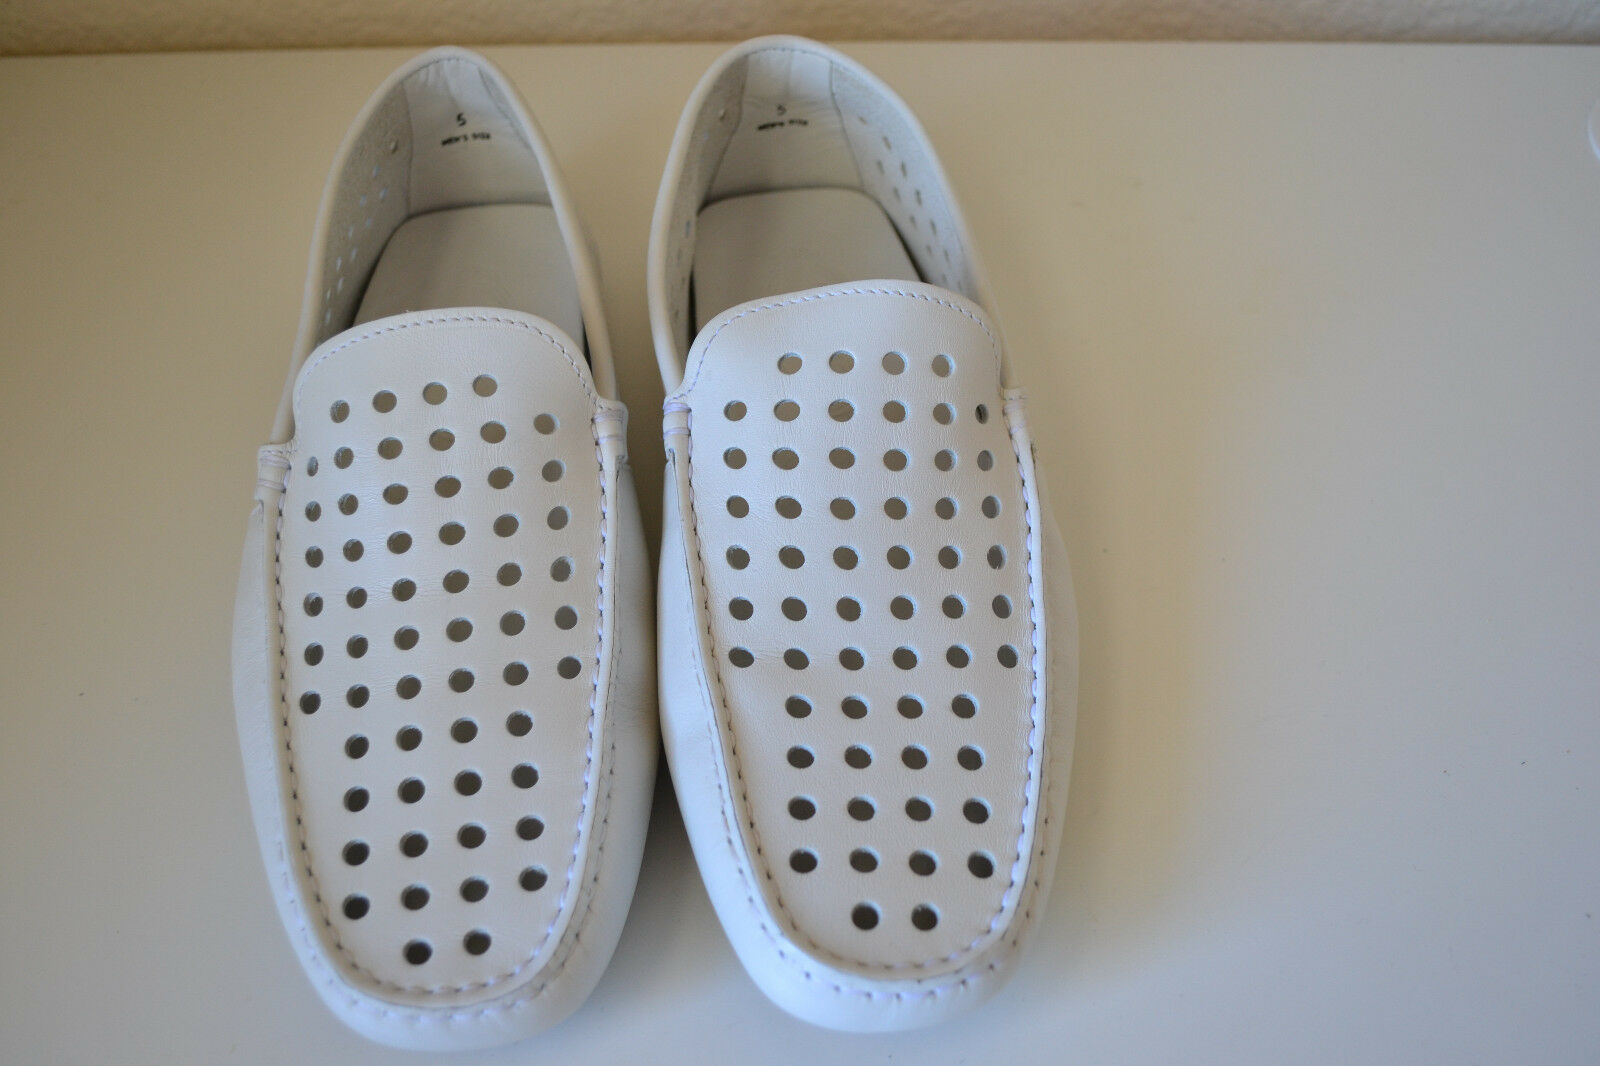 Scarpe casual da uomo  TOD'S Perforated Leather Driving shoes White Size 6(US) Brand new